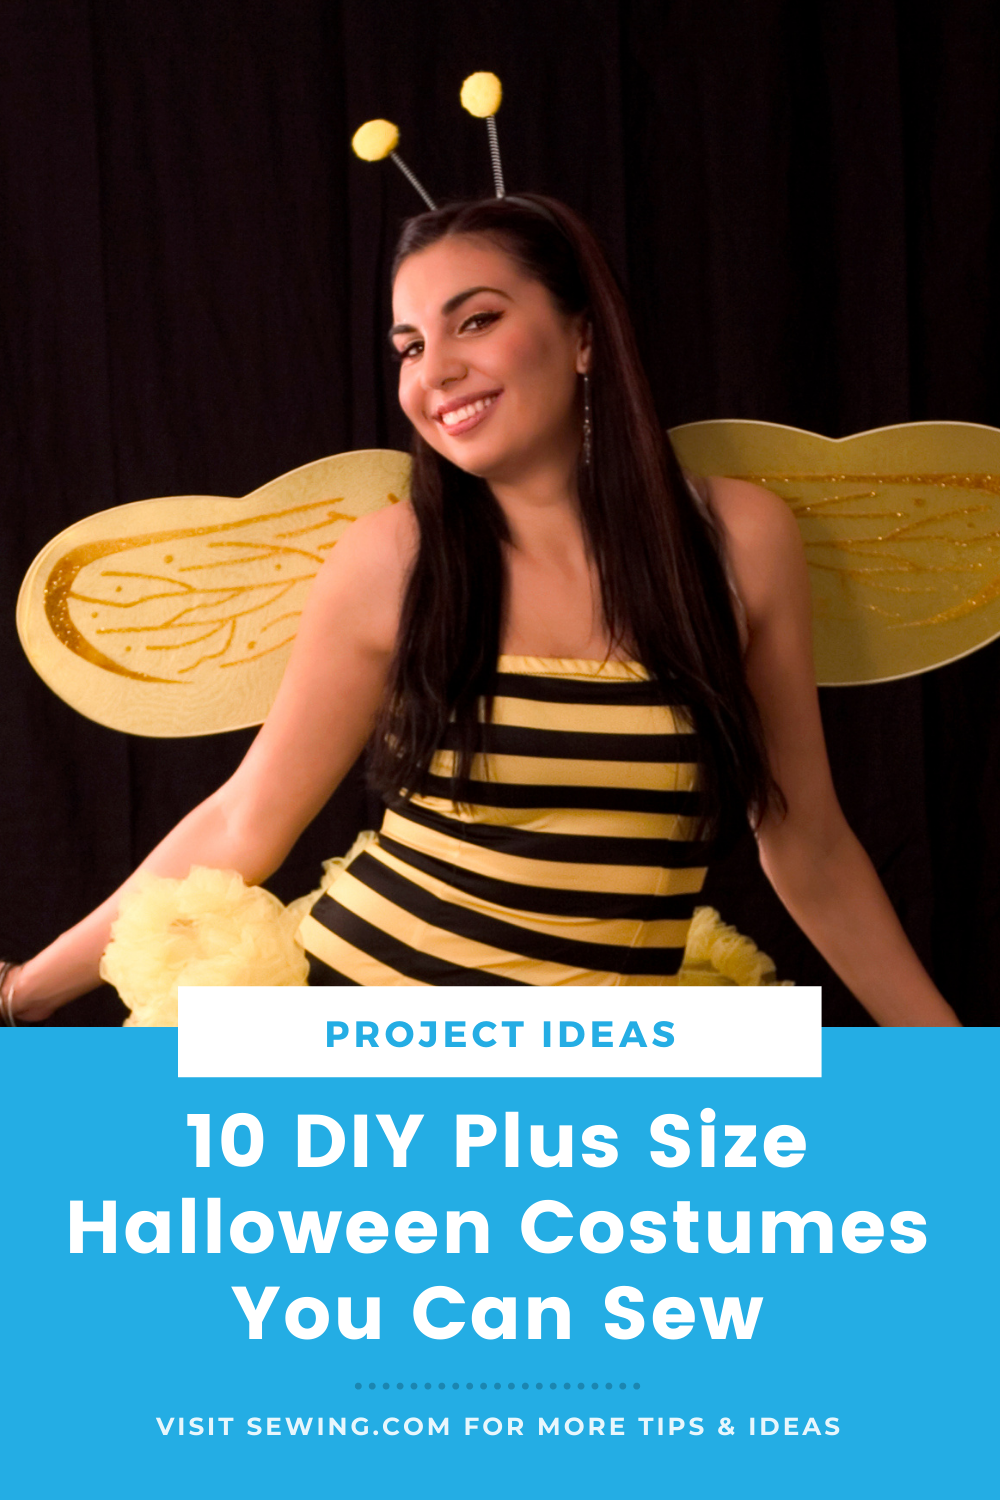 placard | 10 DIY Plus Size Halloween Costumes You Can Sew